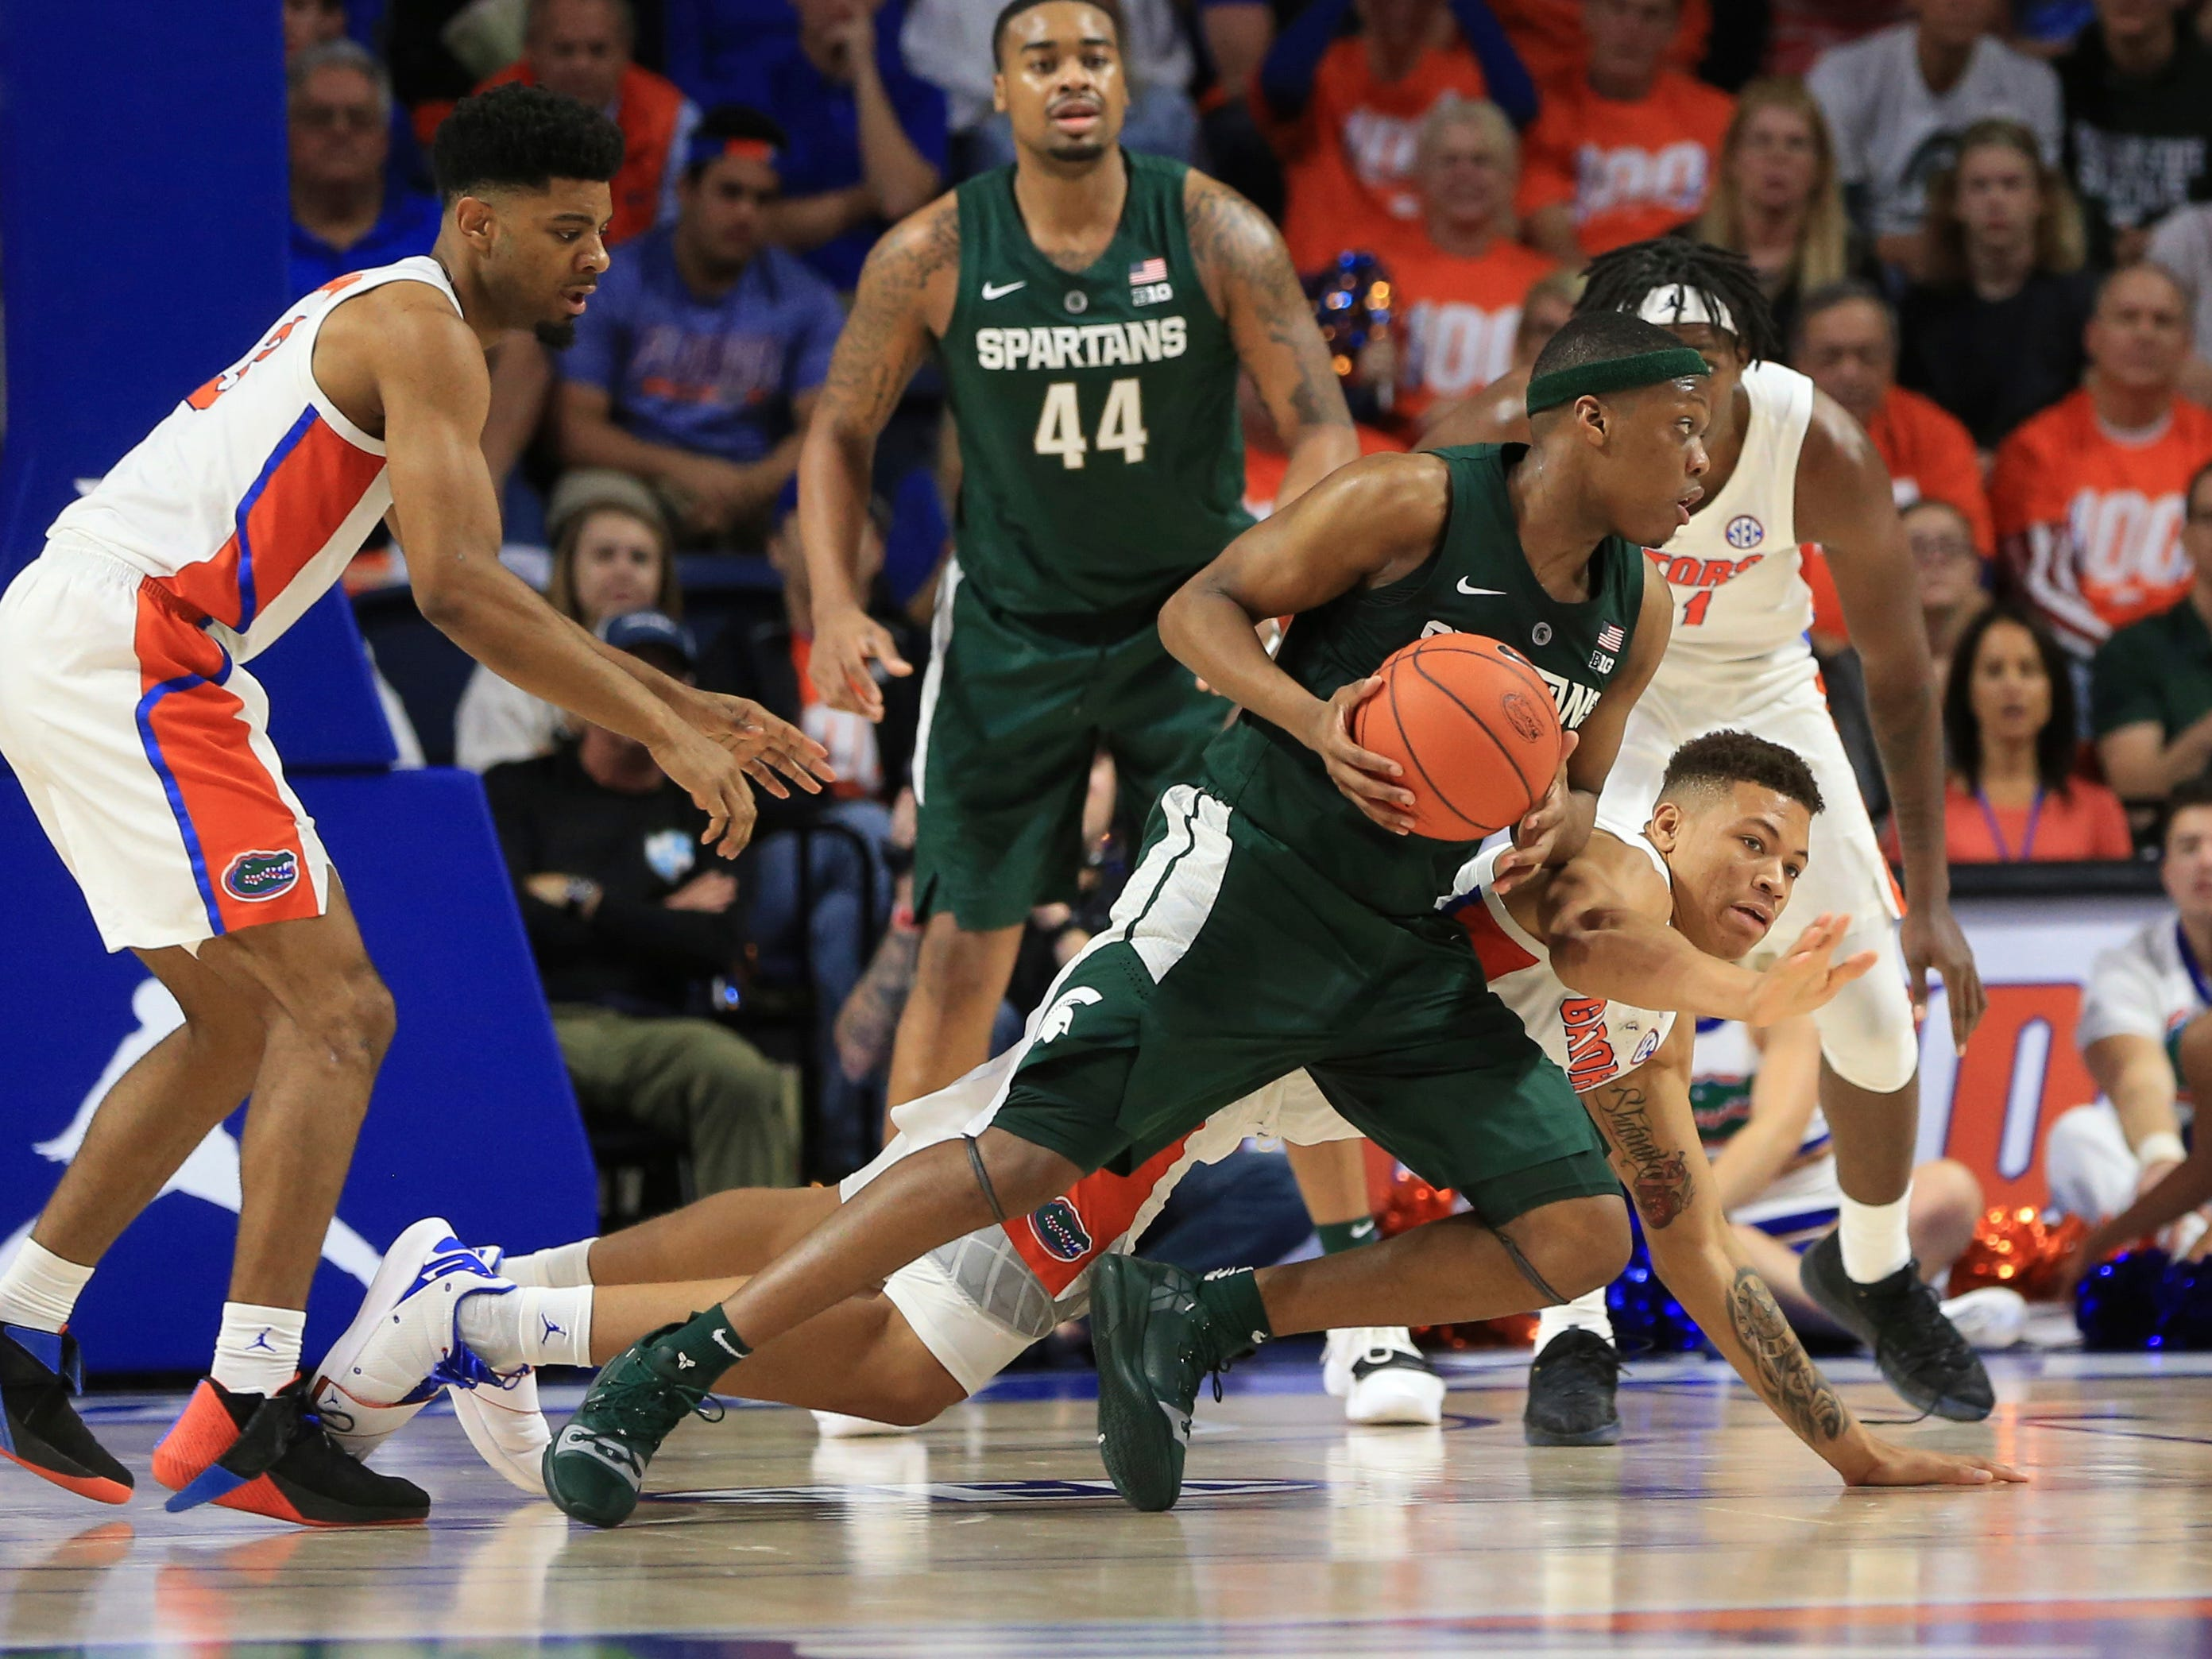 Michigan State guard Cassius Winston (5) comes up with the ball past a diving Florida forward Keyontae Johnson (11) during the second half.